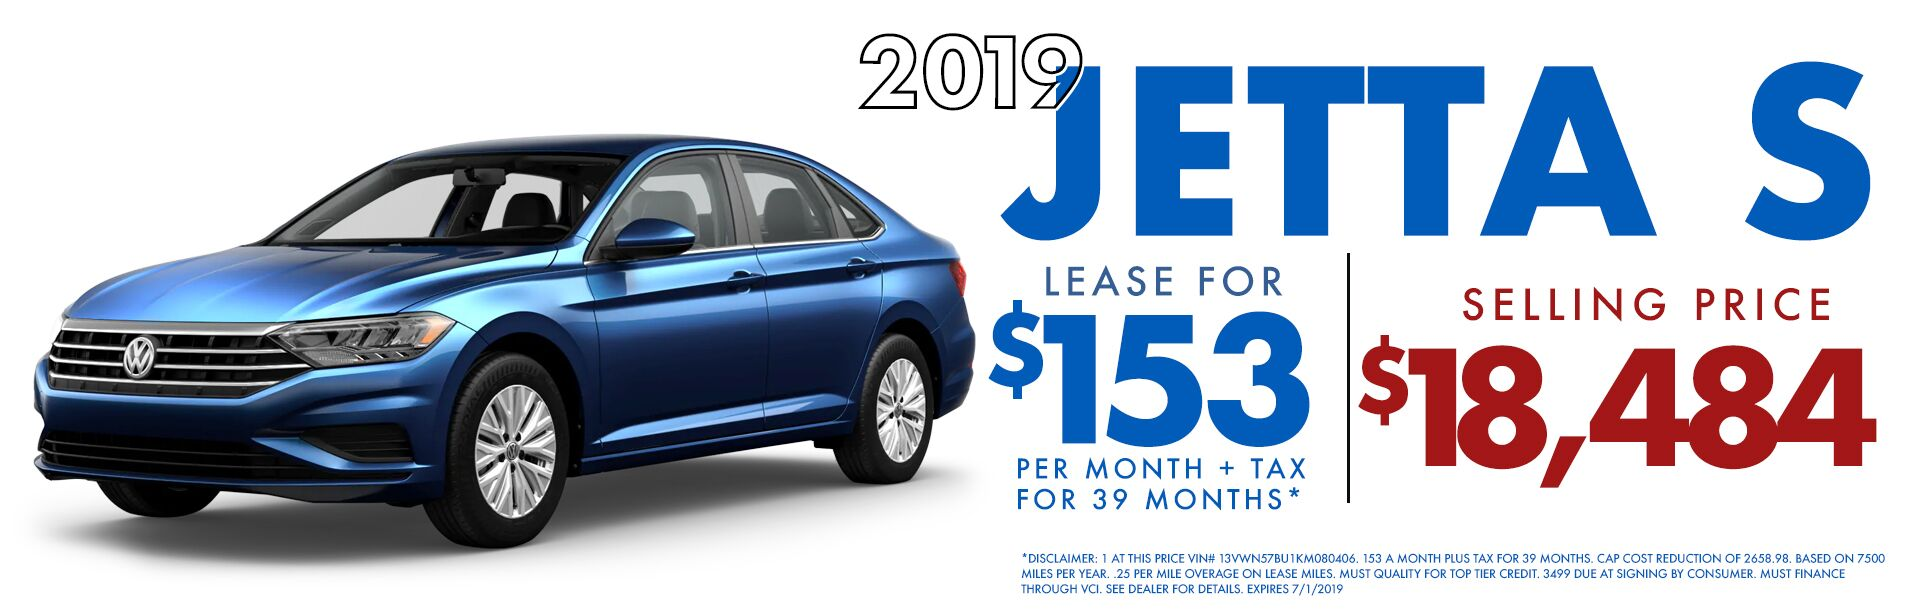 Jetta S Lease Special June